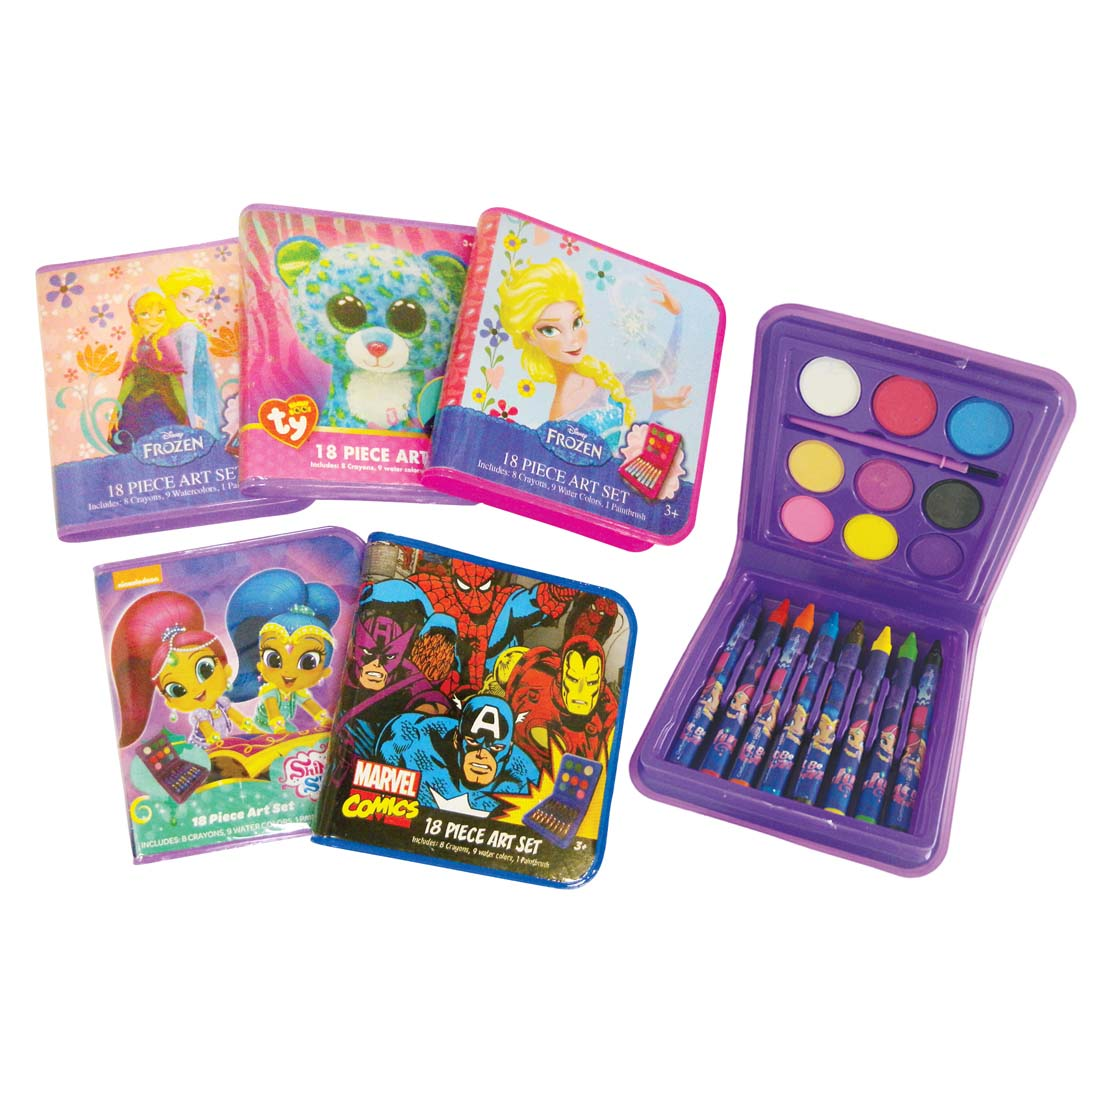 View LICENSED ART SET 18 PIECE INCLUDES 8 CRAYONS/ 9 WATERCOLORS/ 1 PAINTBRUSH AGES 3+ ASSORTED DESIGNS